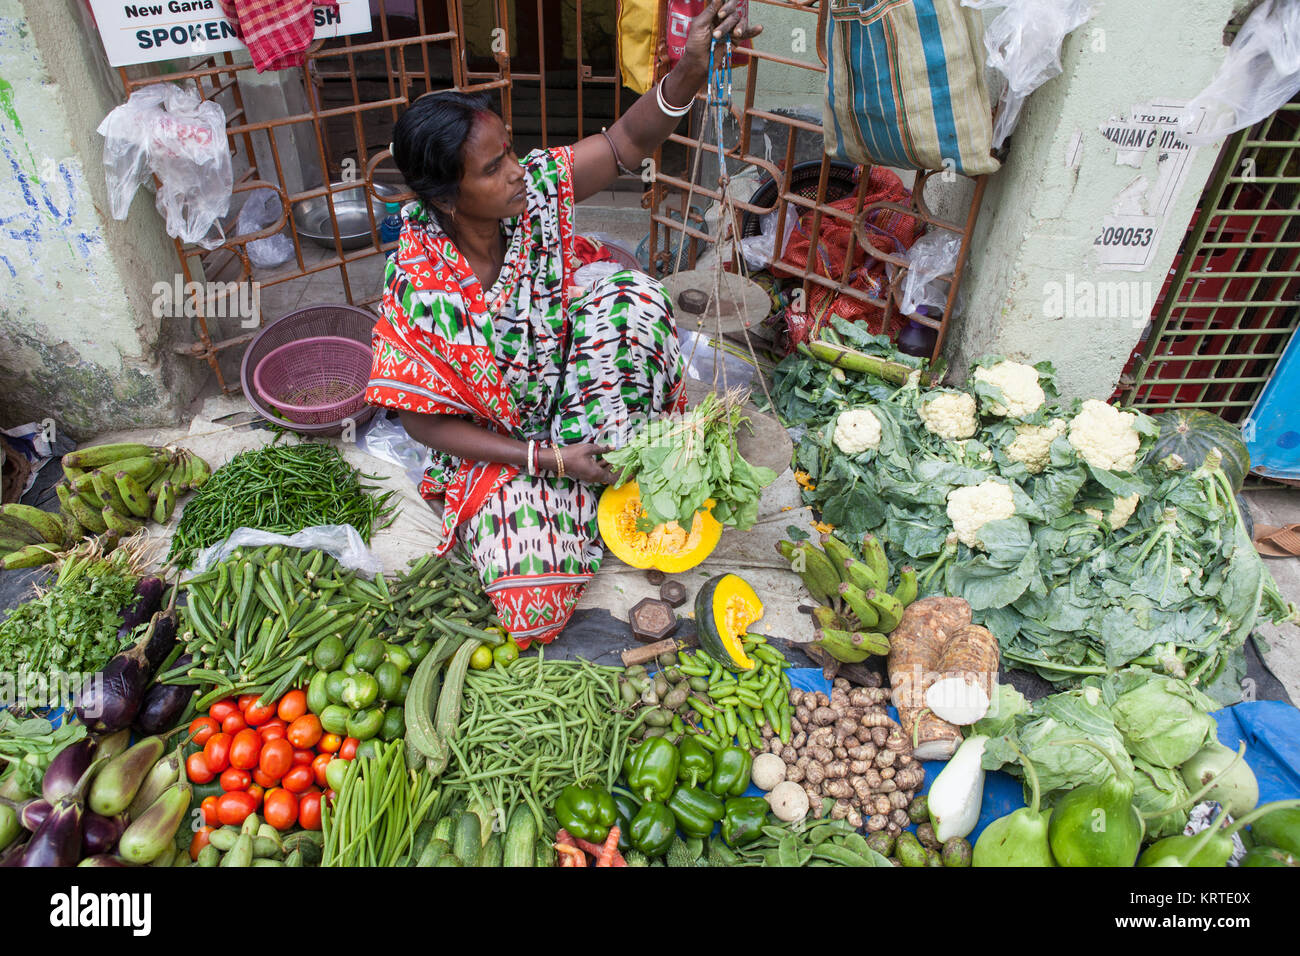 Vegetable seller in the market in the Garia district of Kolkata, India - Stock Image